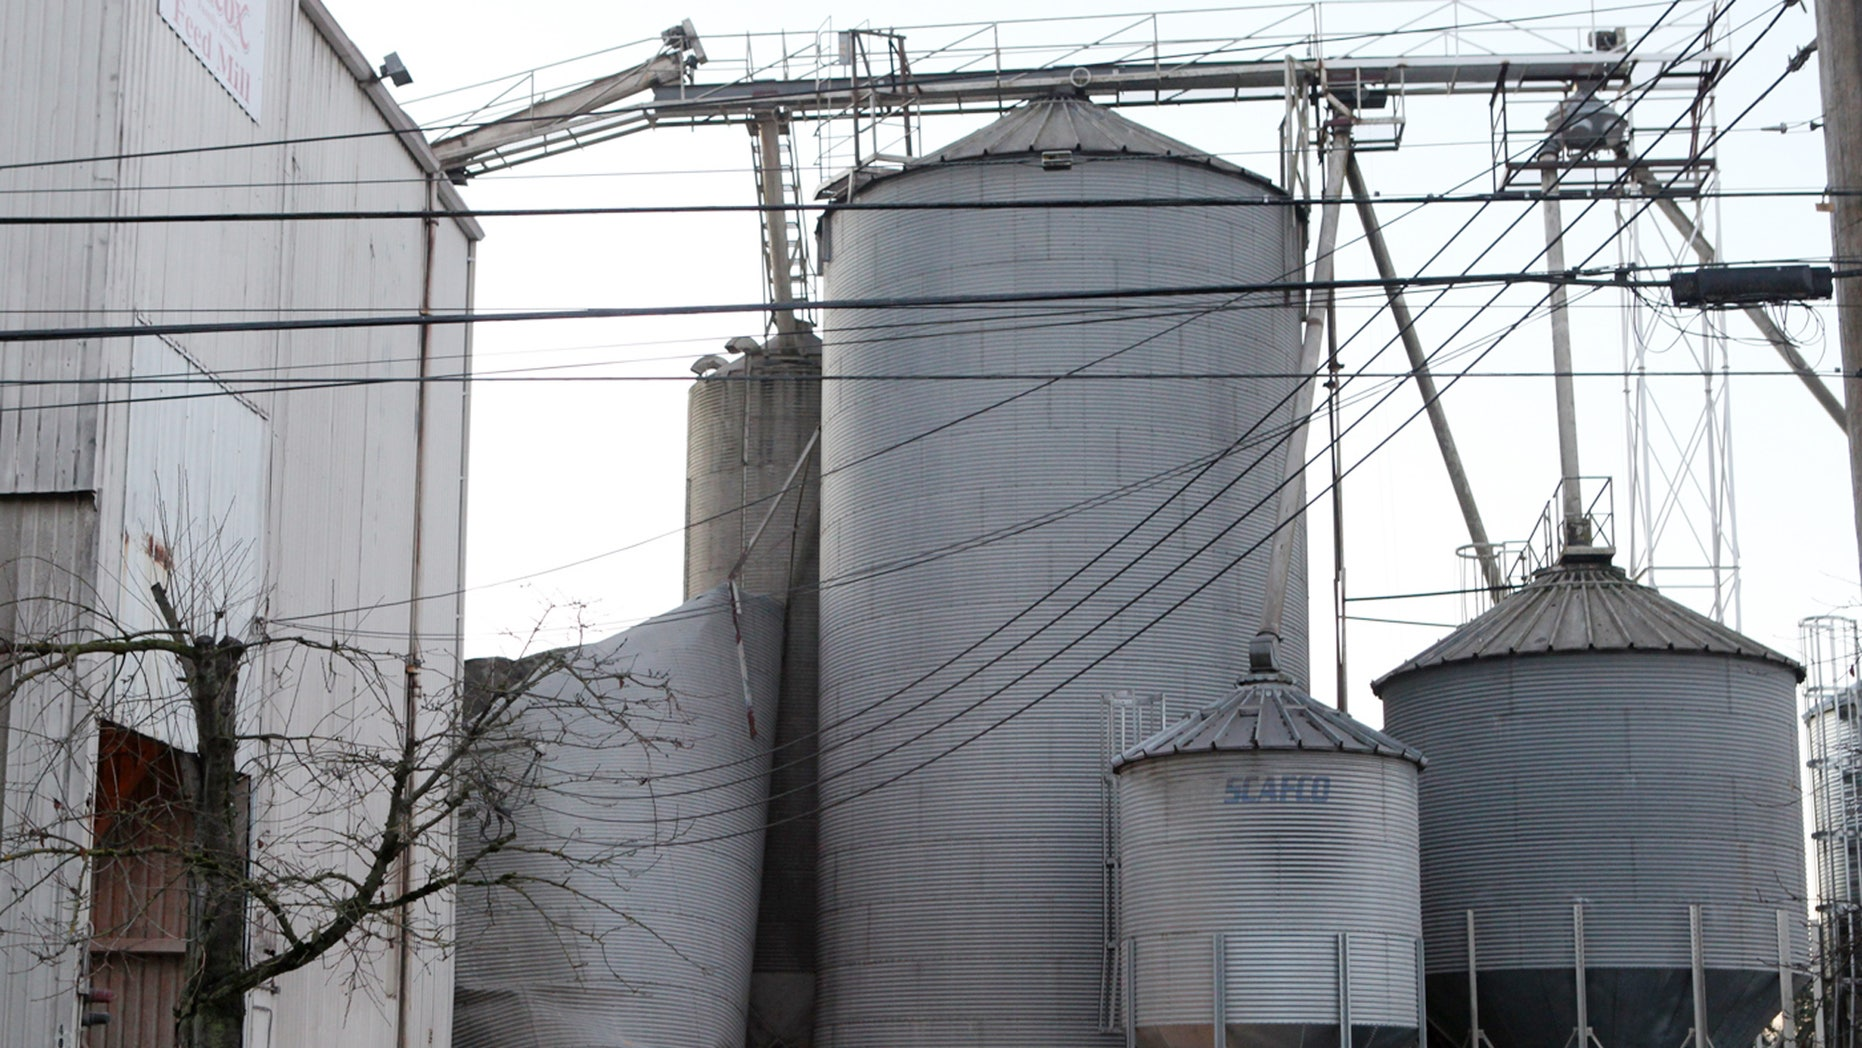 Dec. 2, 2013: Emergency responders from the South Pierce Fire Department respond to a grain processing feed mill owned by Wilcox Farms in downtown Roy, Wash. after one of its silos collapsed.